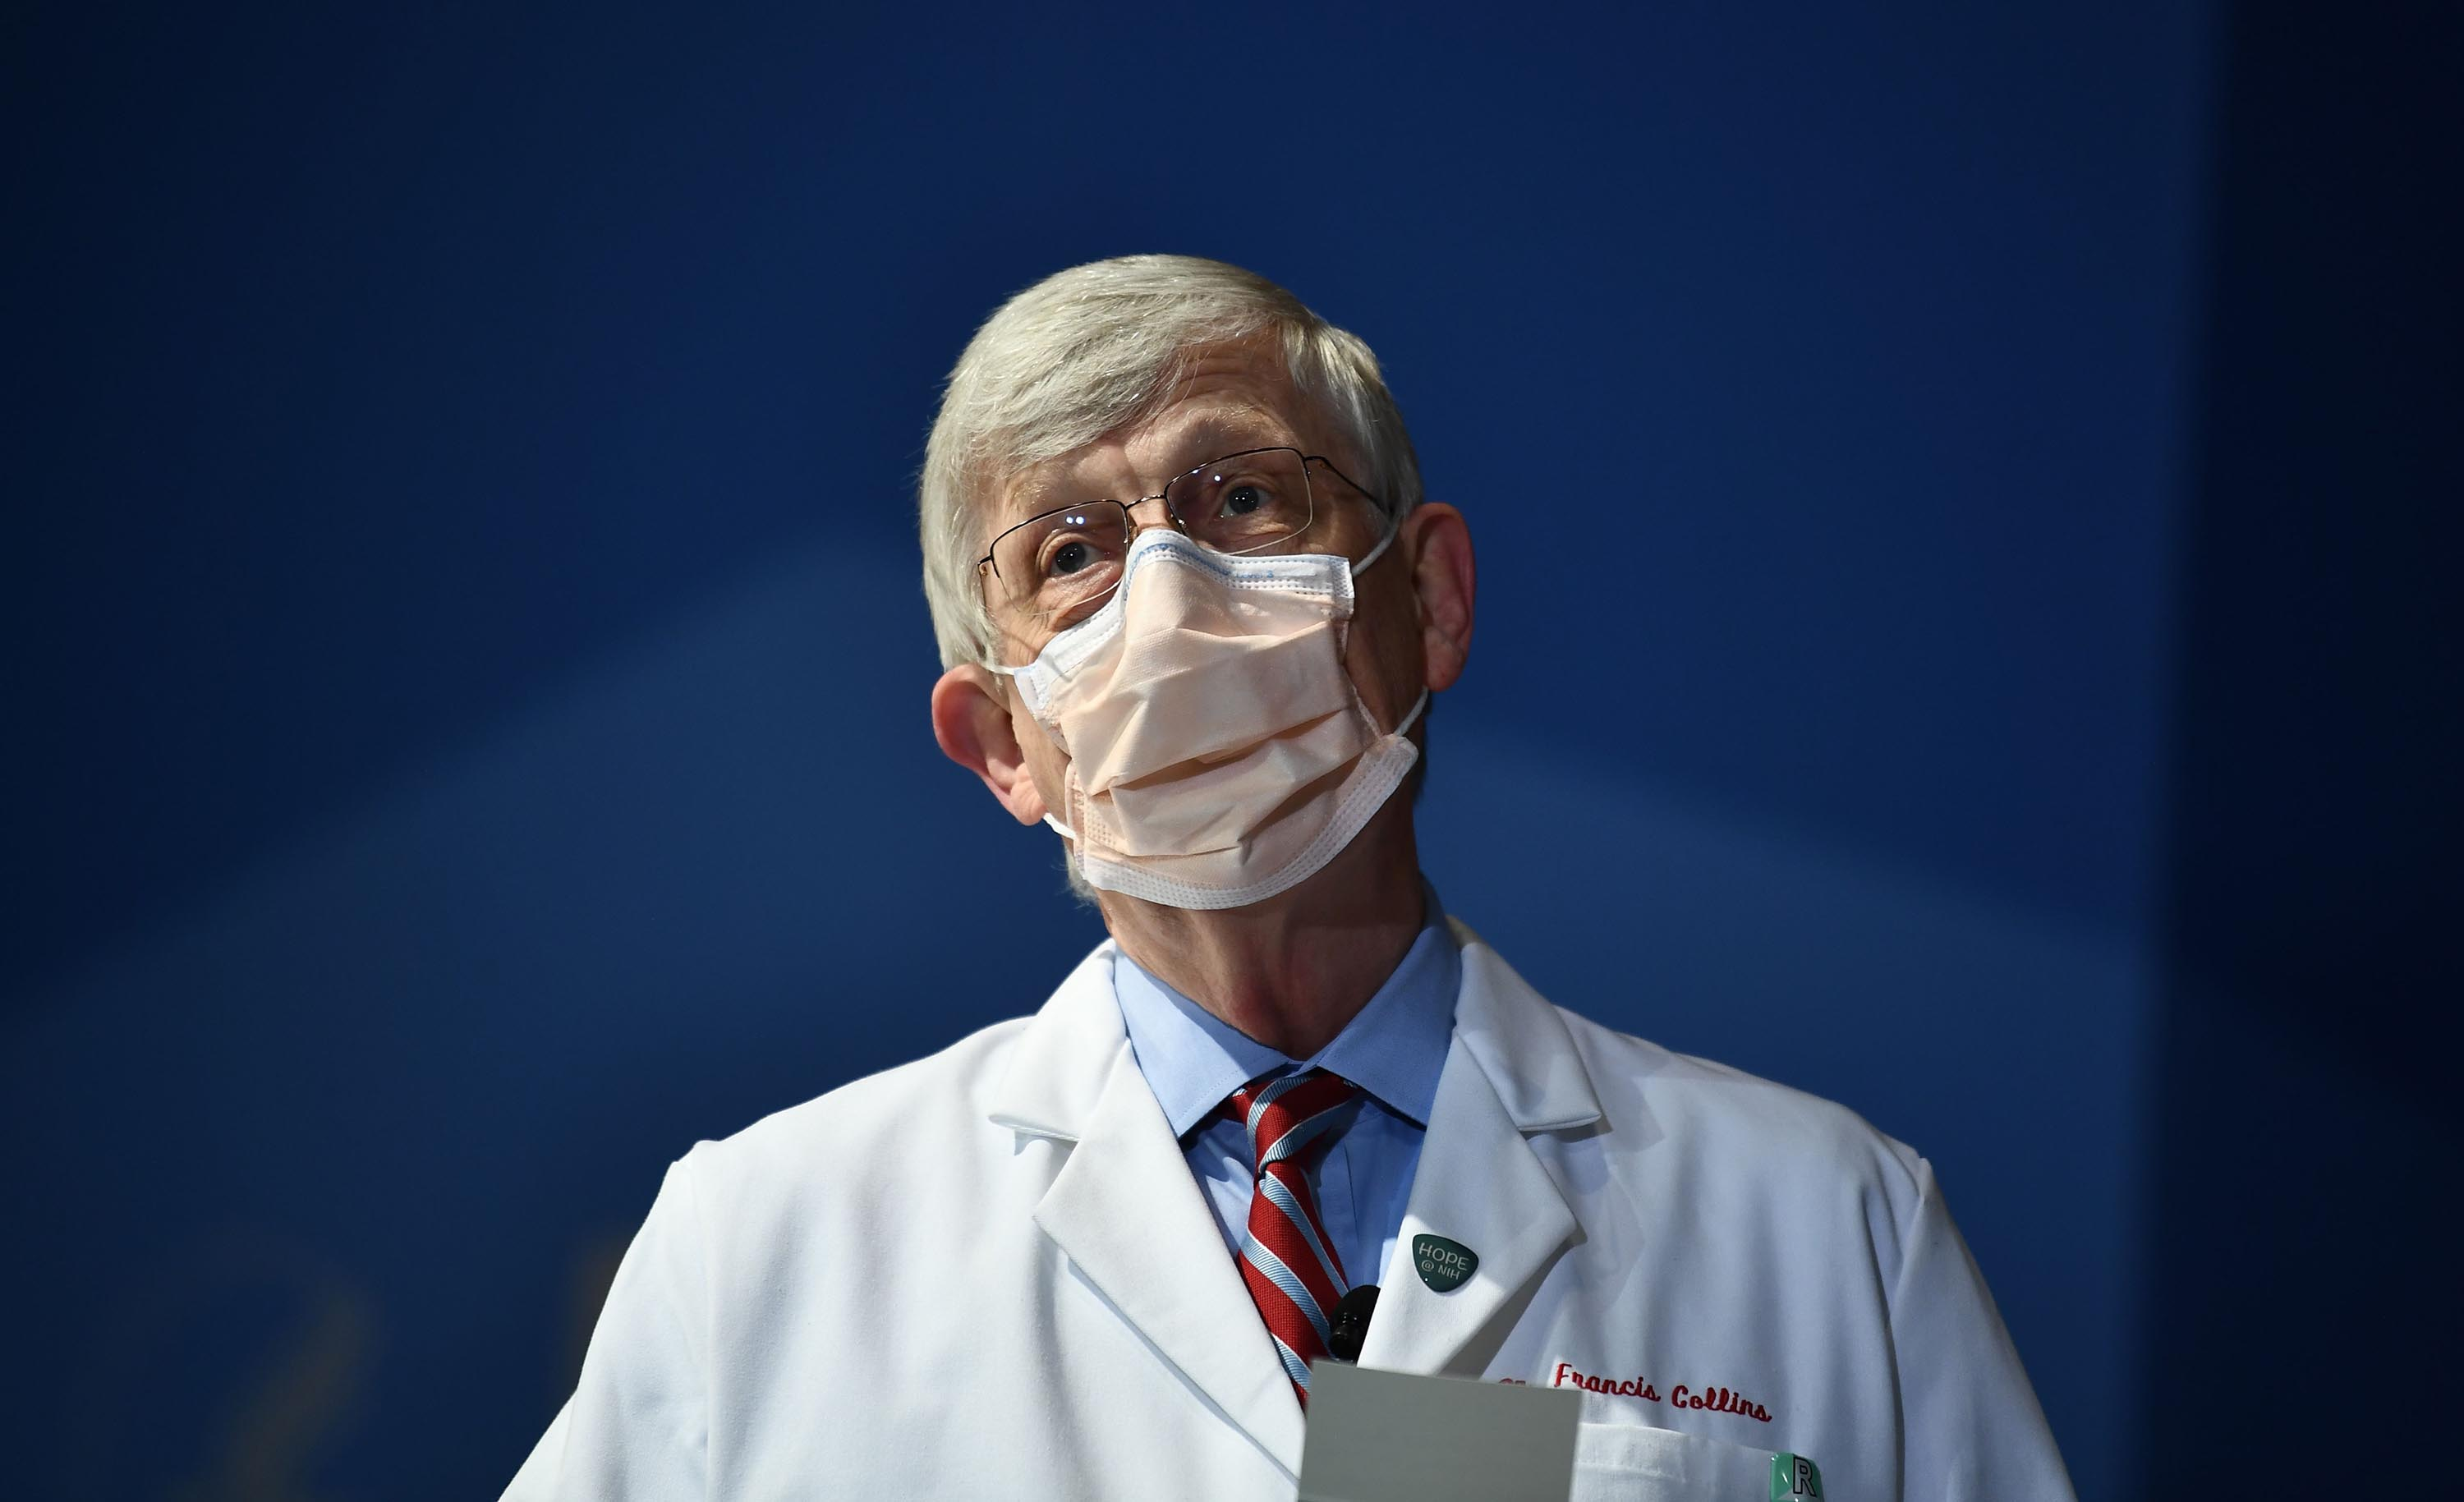 Dr. Francis Collins, director of the National Institutes of Health, is pictured in Bethesda, Maryland, on January 26.